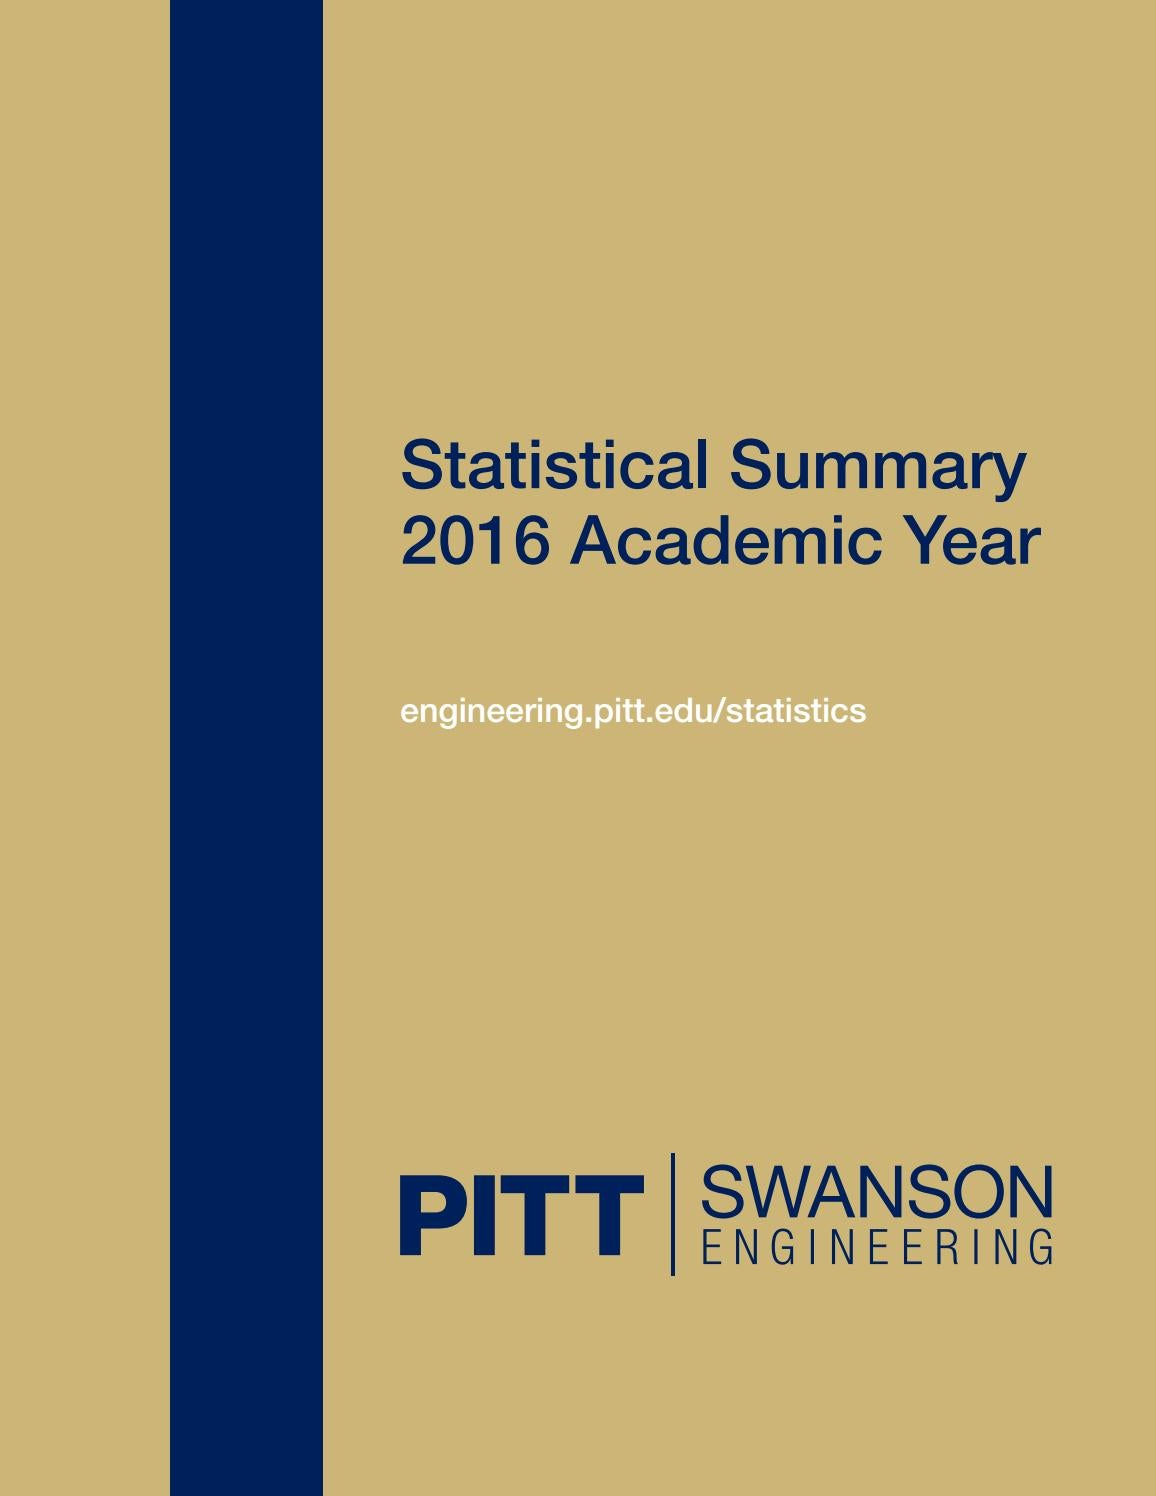 Swanson School of Engineering 2016 statistical summary by PITT ...